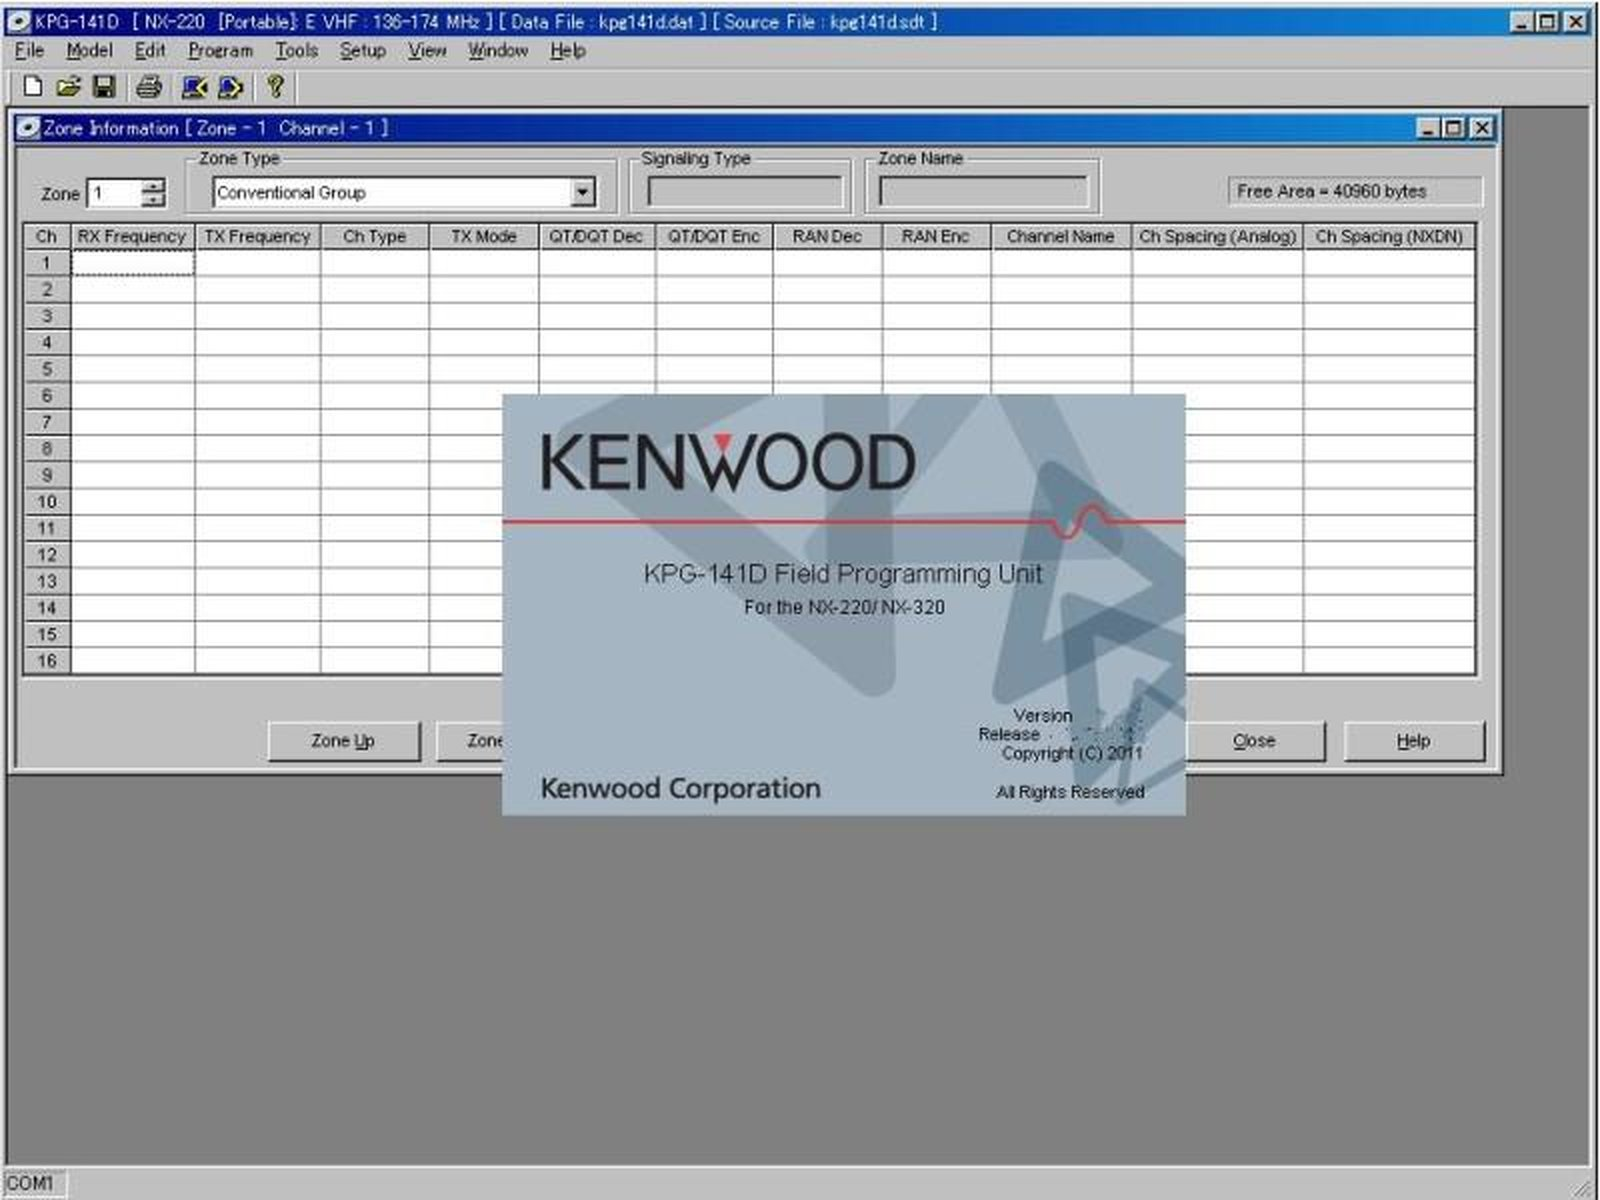 Kenwood KAS-12 Lizenz für intelligentes Batteriemagement Software